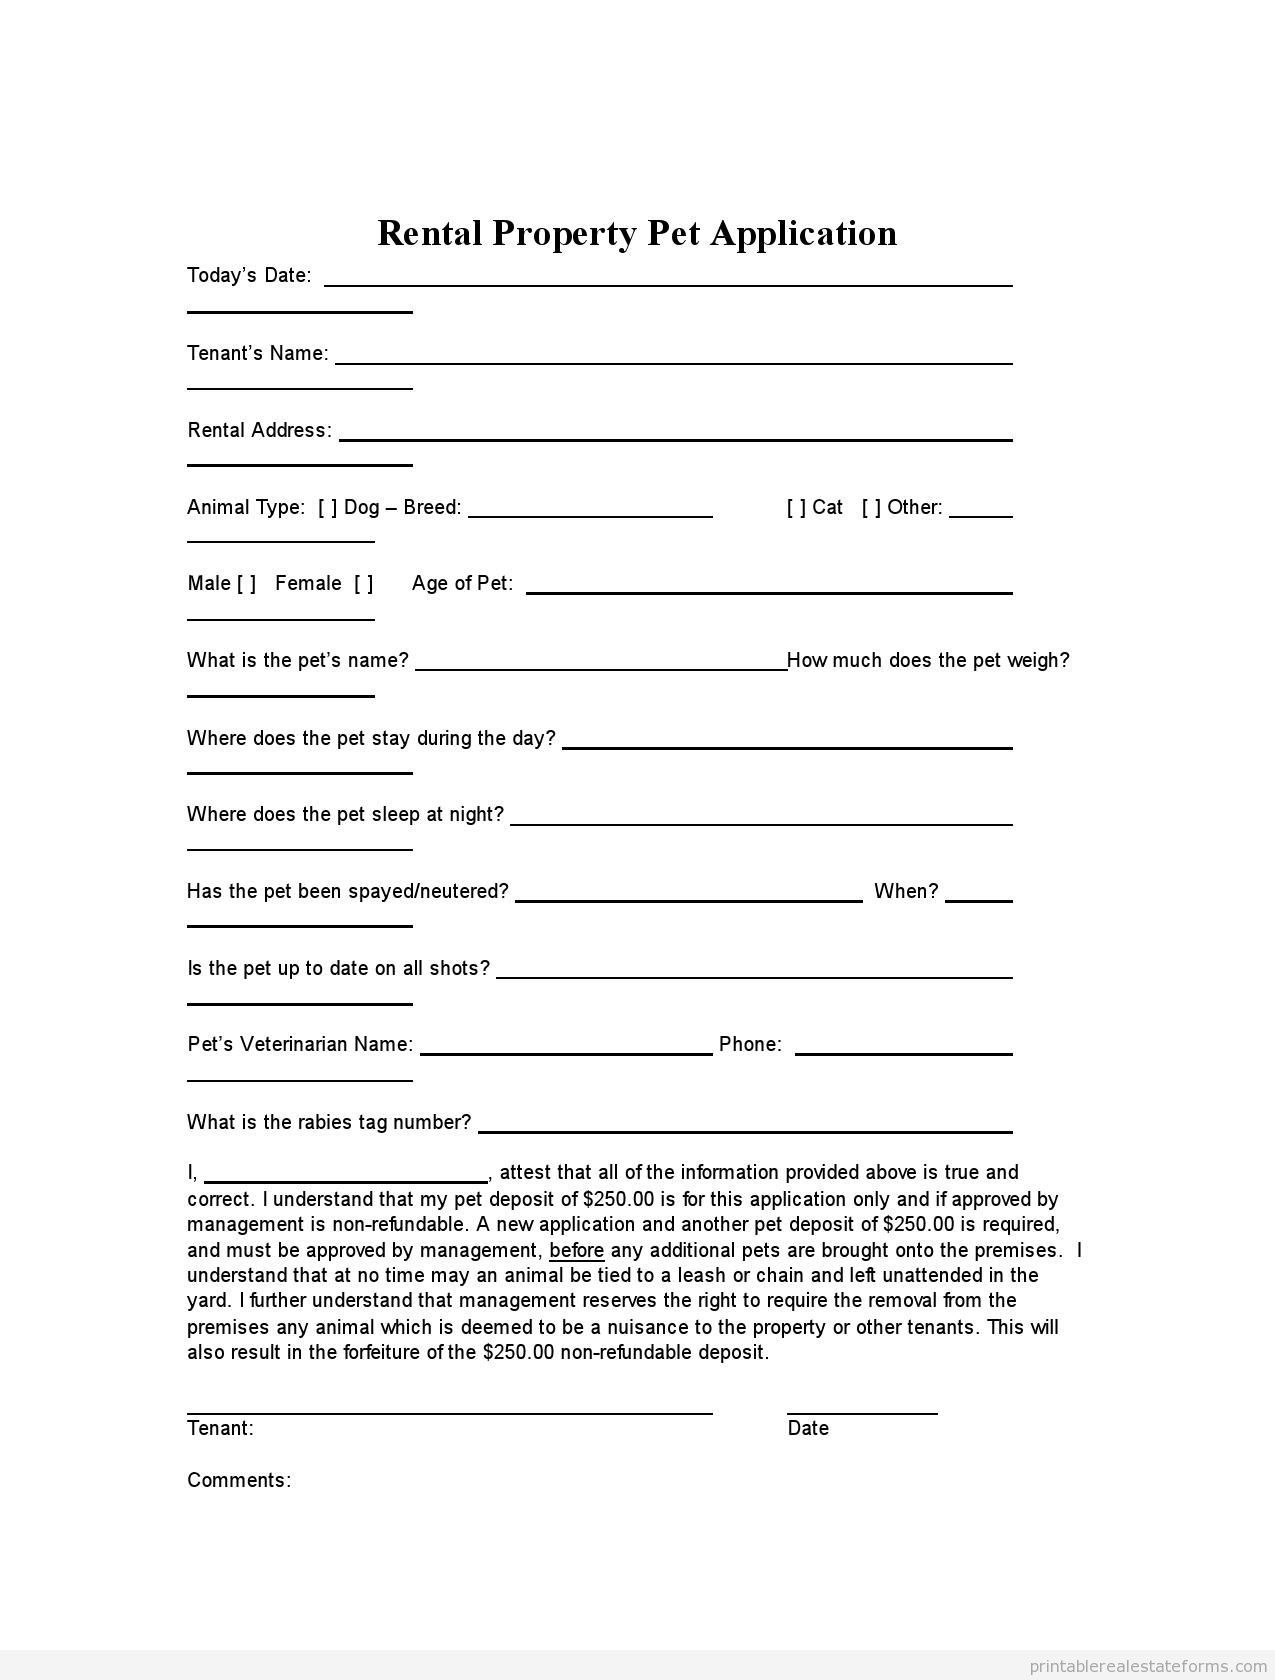 printable rental property pet application template 2015